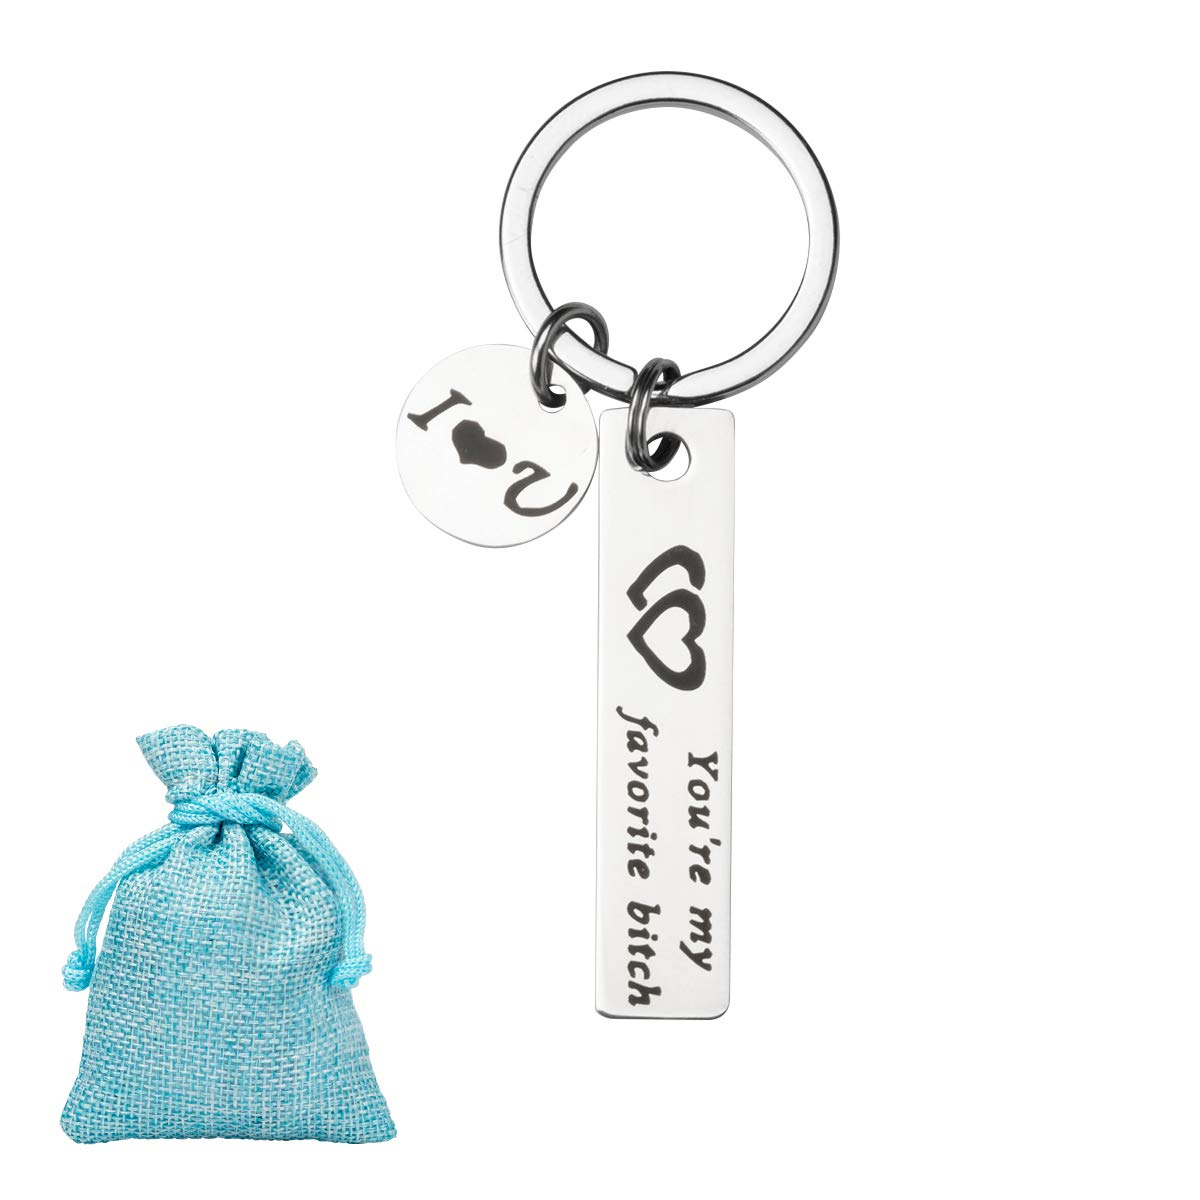 You\'re My Favorite Bitch Funny Keychain, 4YOUALL Stainless Steel Love Key Chain Jewelry Set for Valentines Day Birthday Gifts - for Funny Woman Girlfriend Wife Gifts (1pc, Bitch)